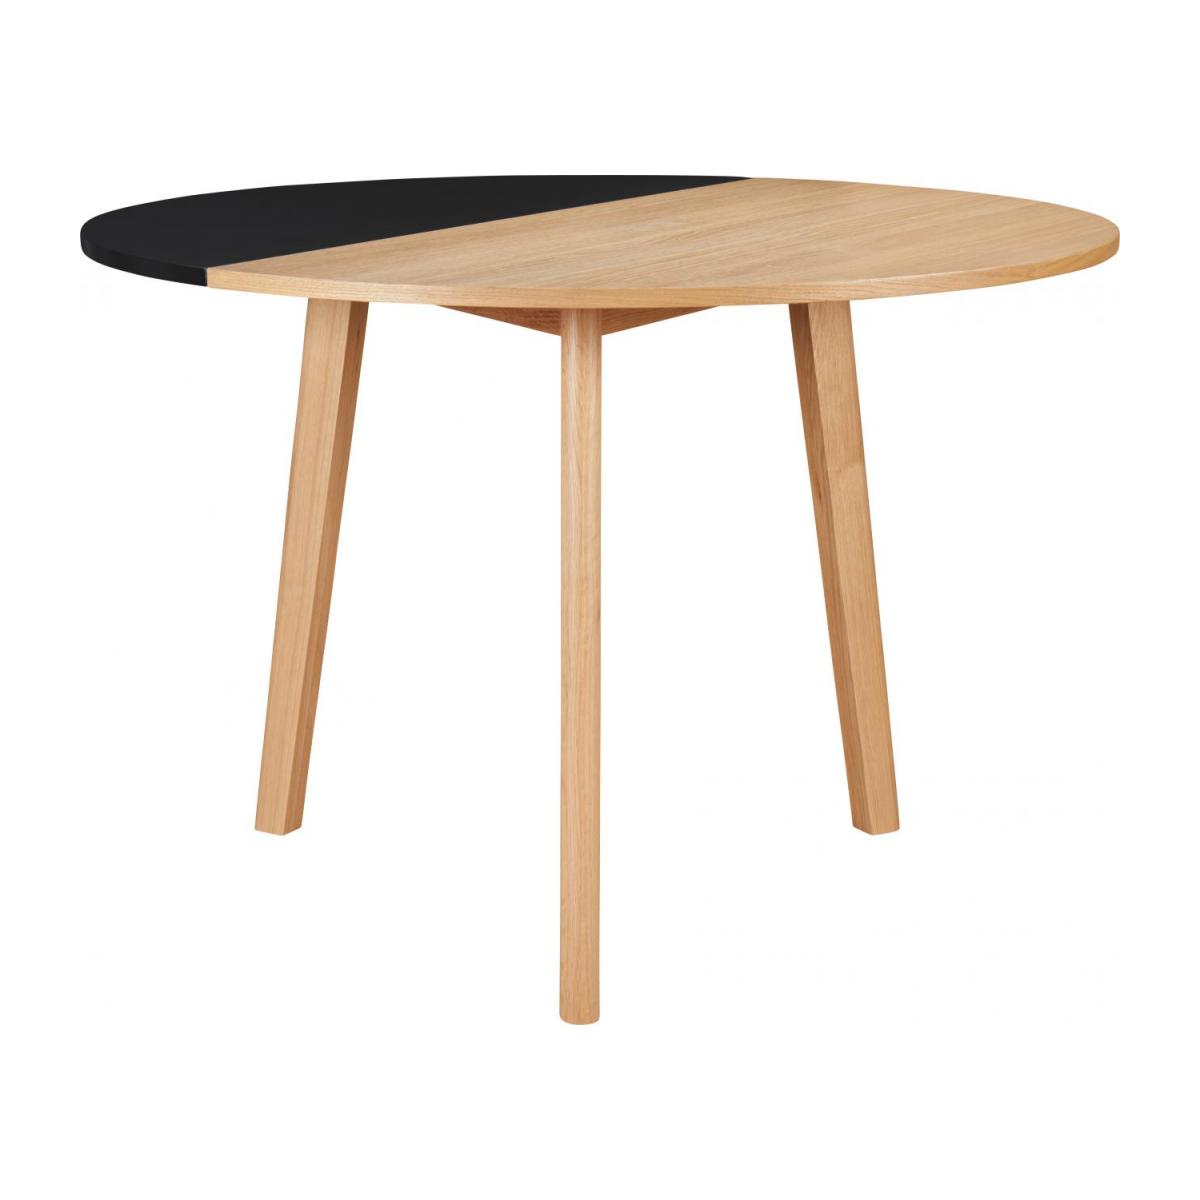 Black oak wood extending table - Design by Goncalo Campos n°1